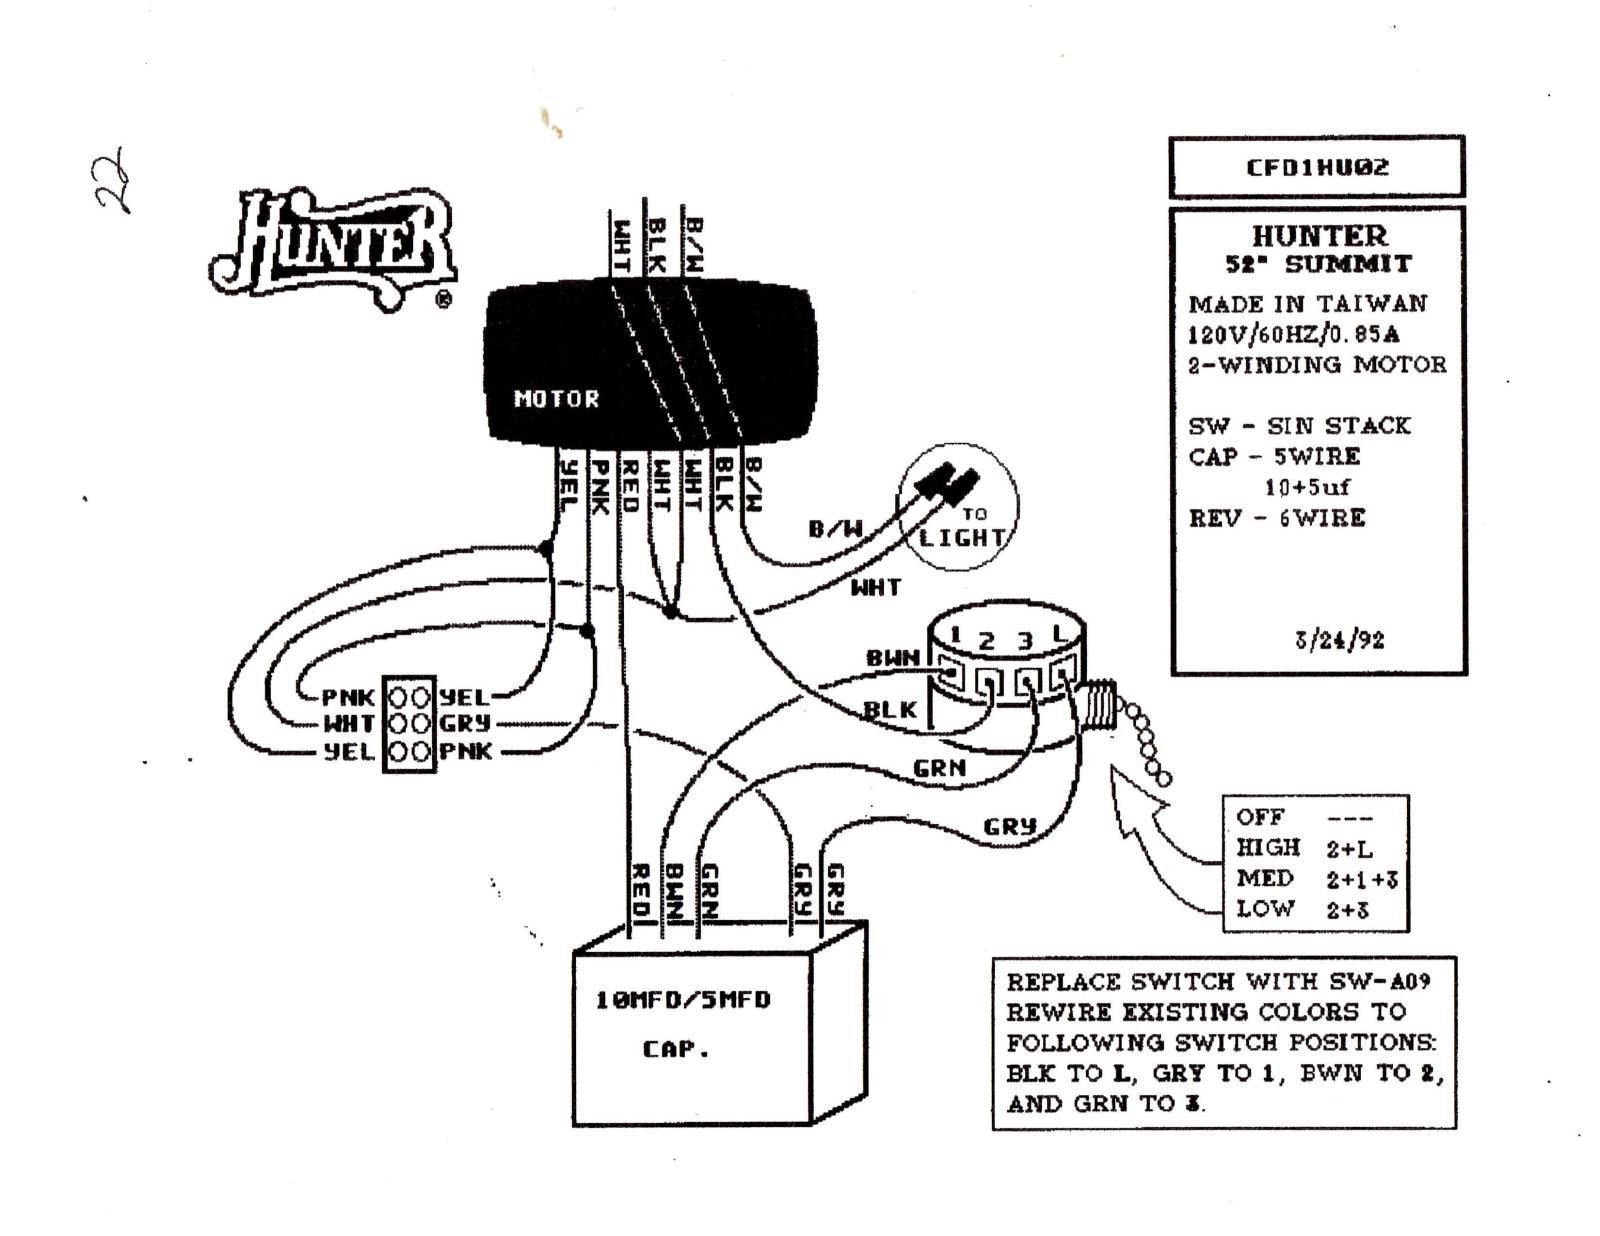 4 wire ceiling fan switch wiring diagram download